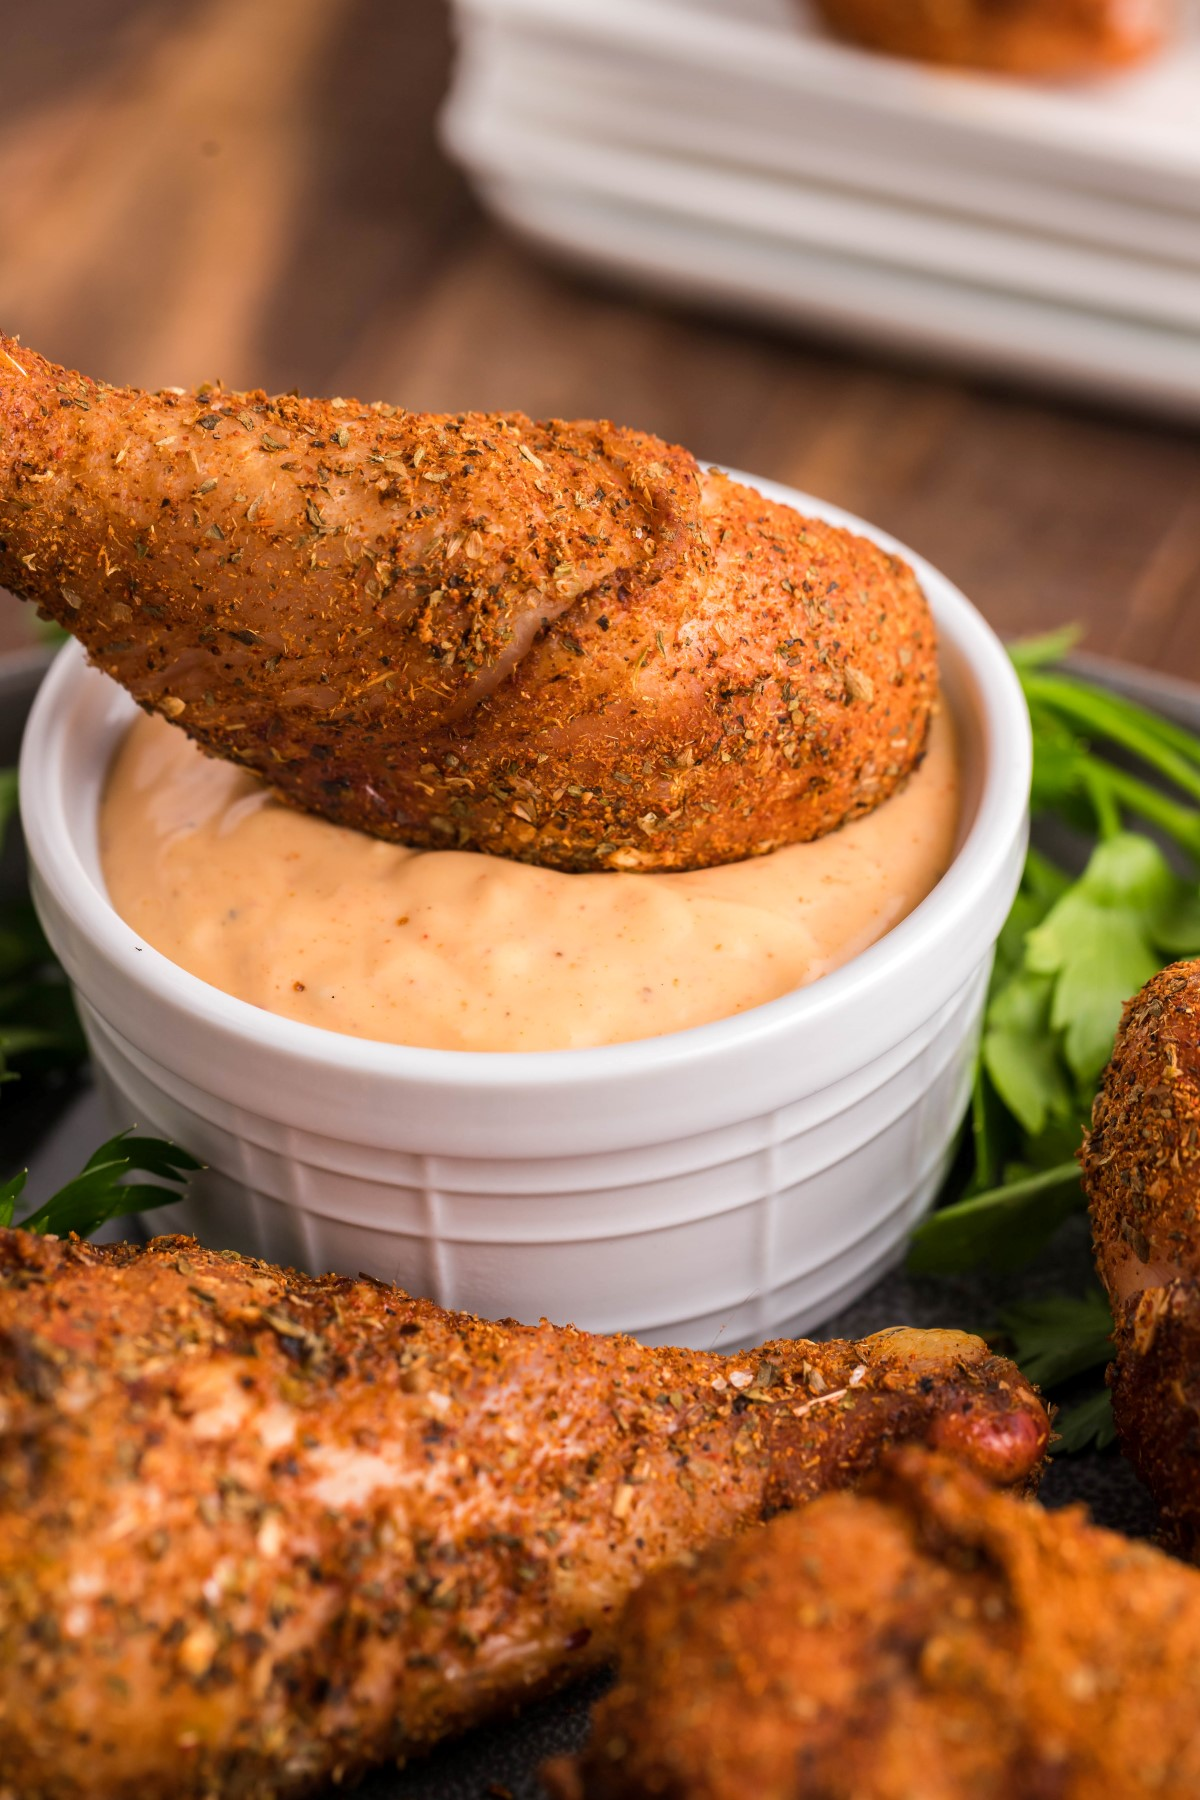 Smoked dry rub drumstick being dipped into a small bowl of chipotle aioli dipping sauce.